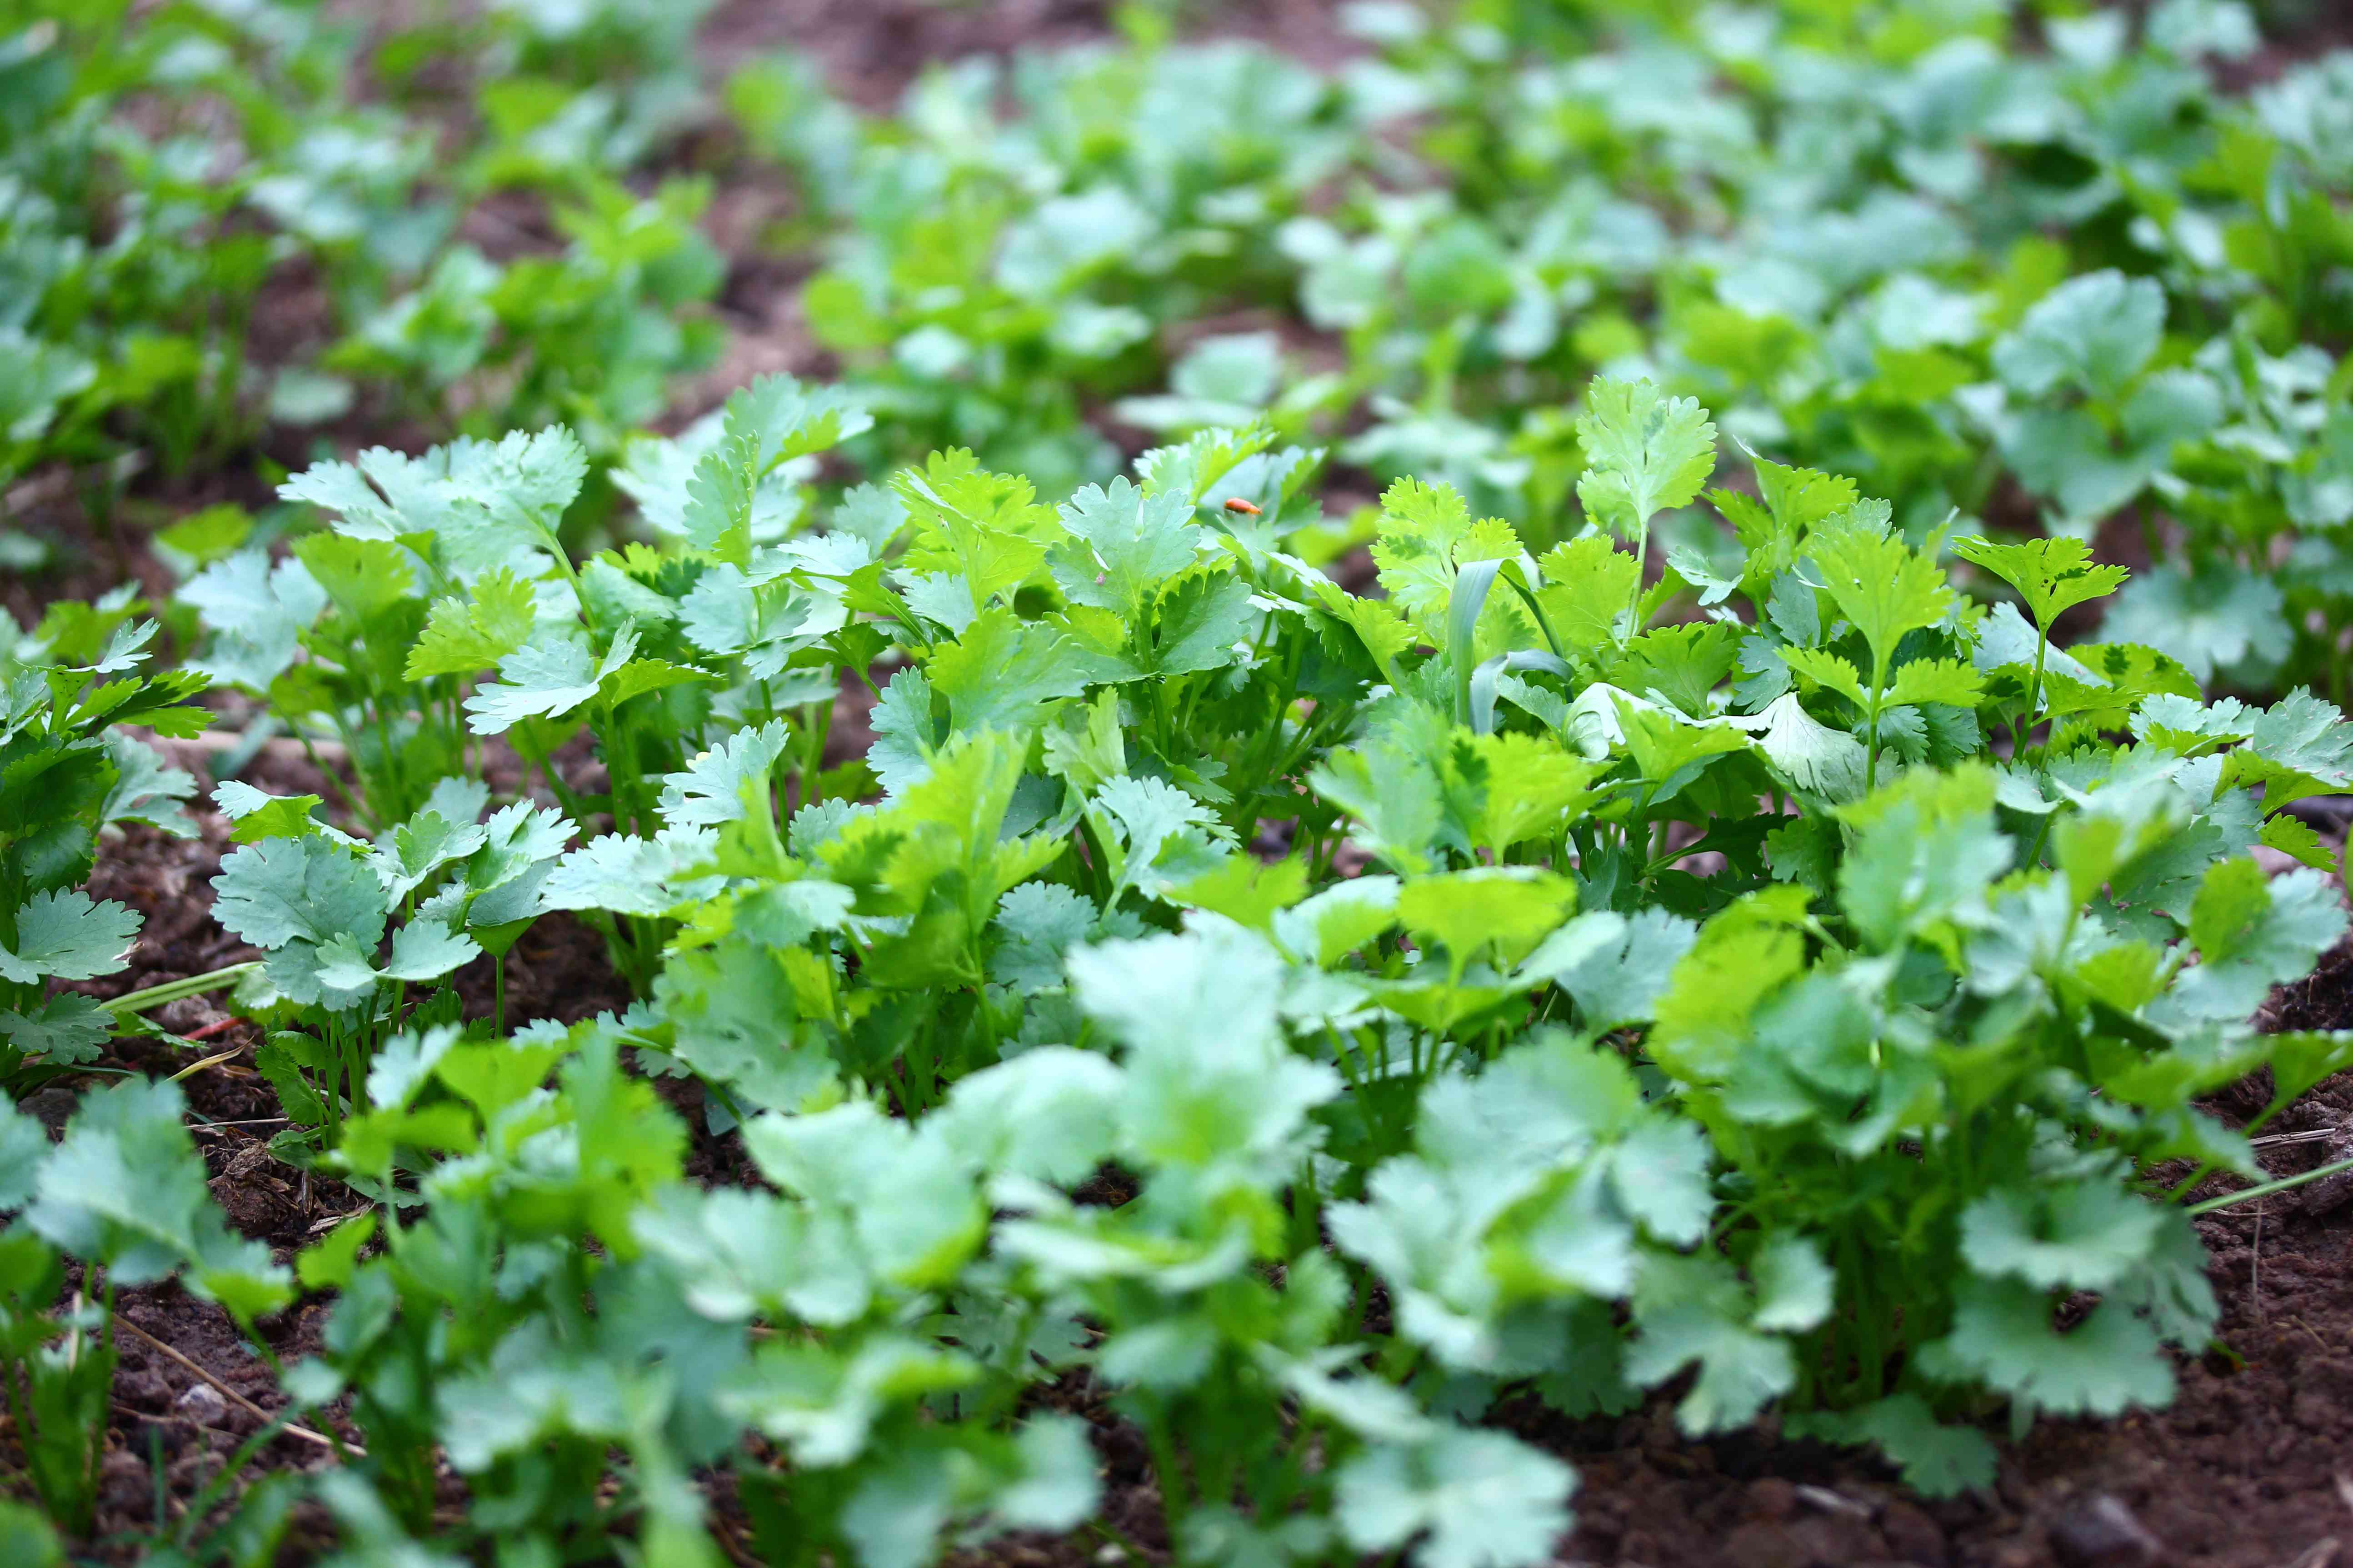 green coriander plants